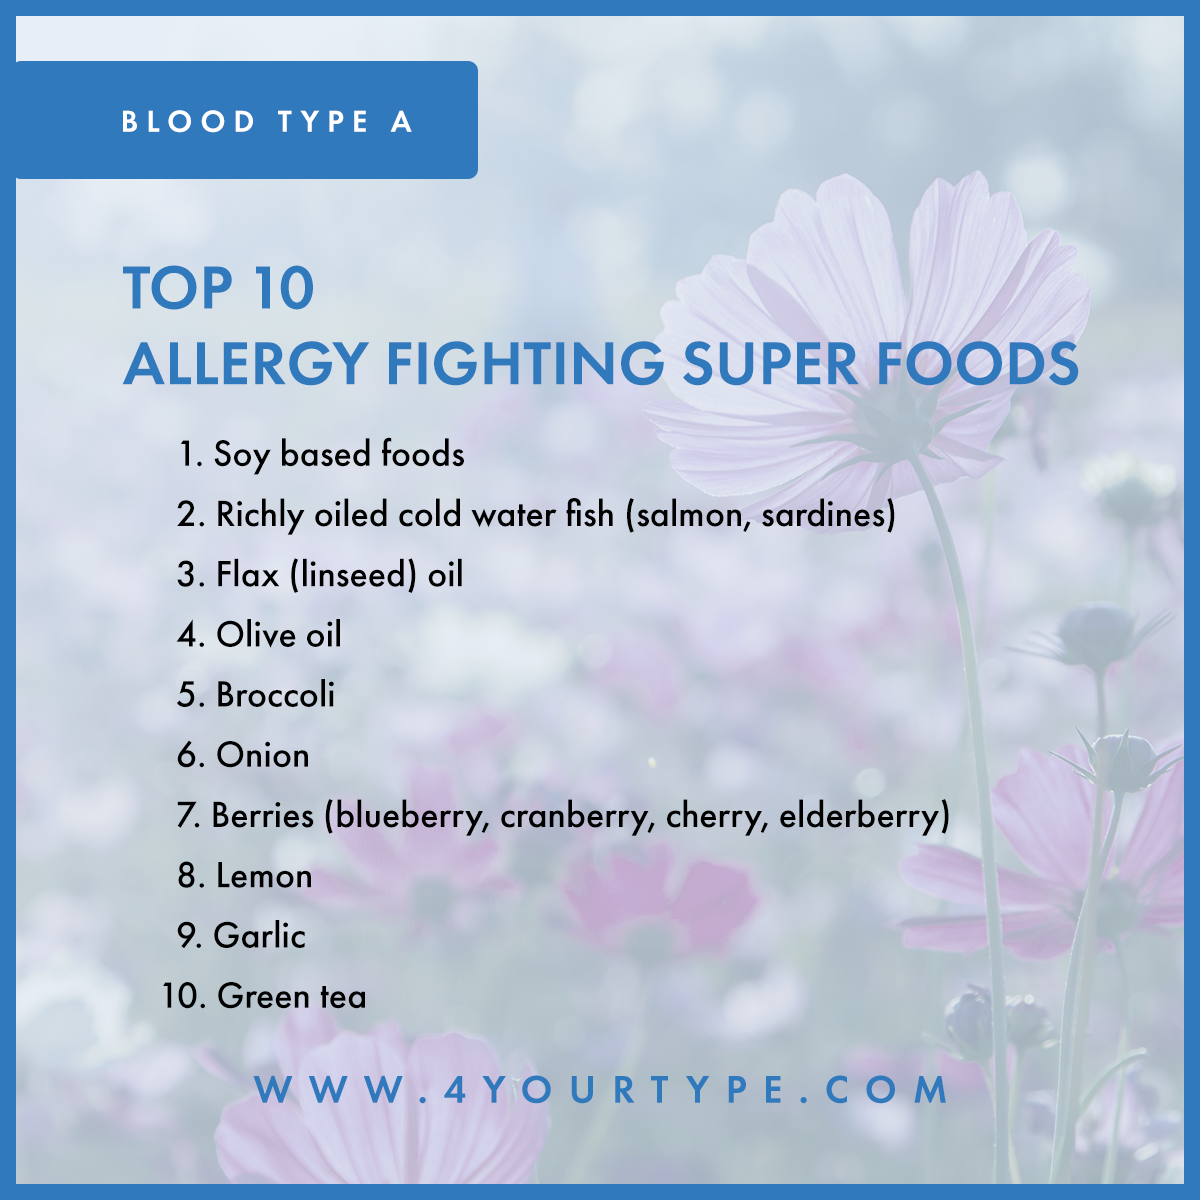 Blood Type A - Allergy Fighting Foods